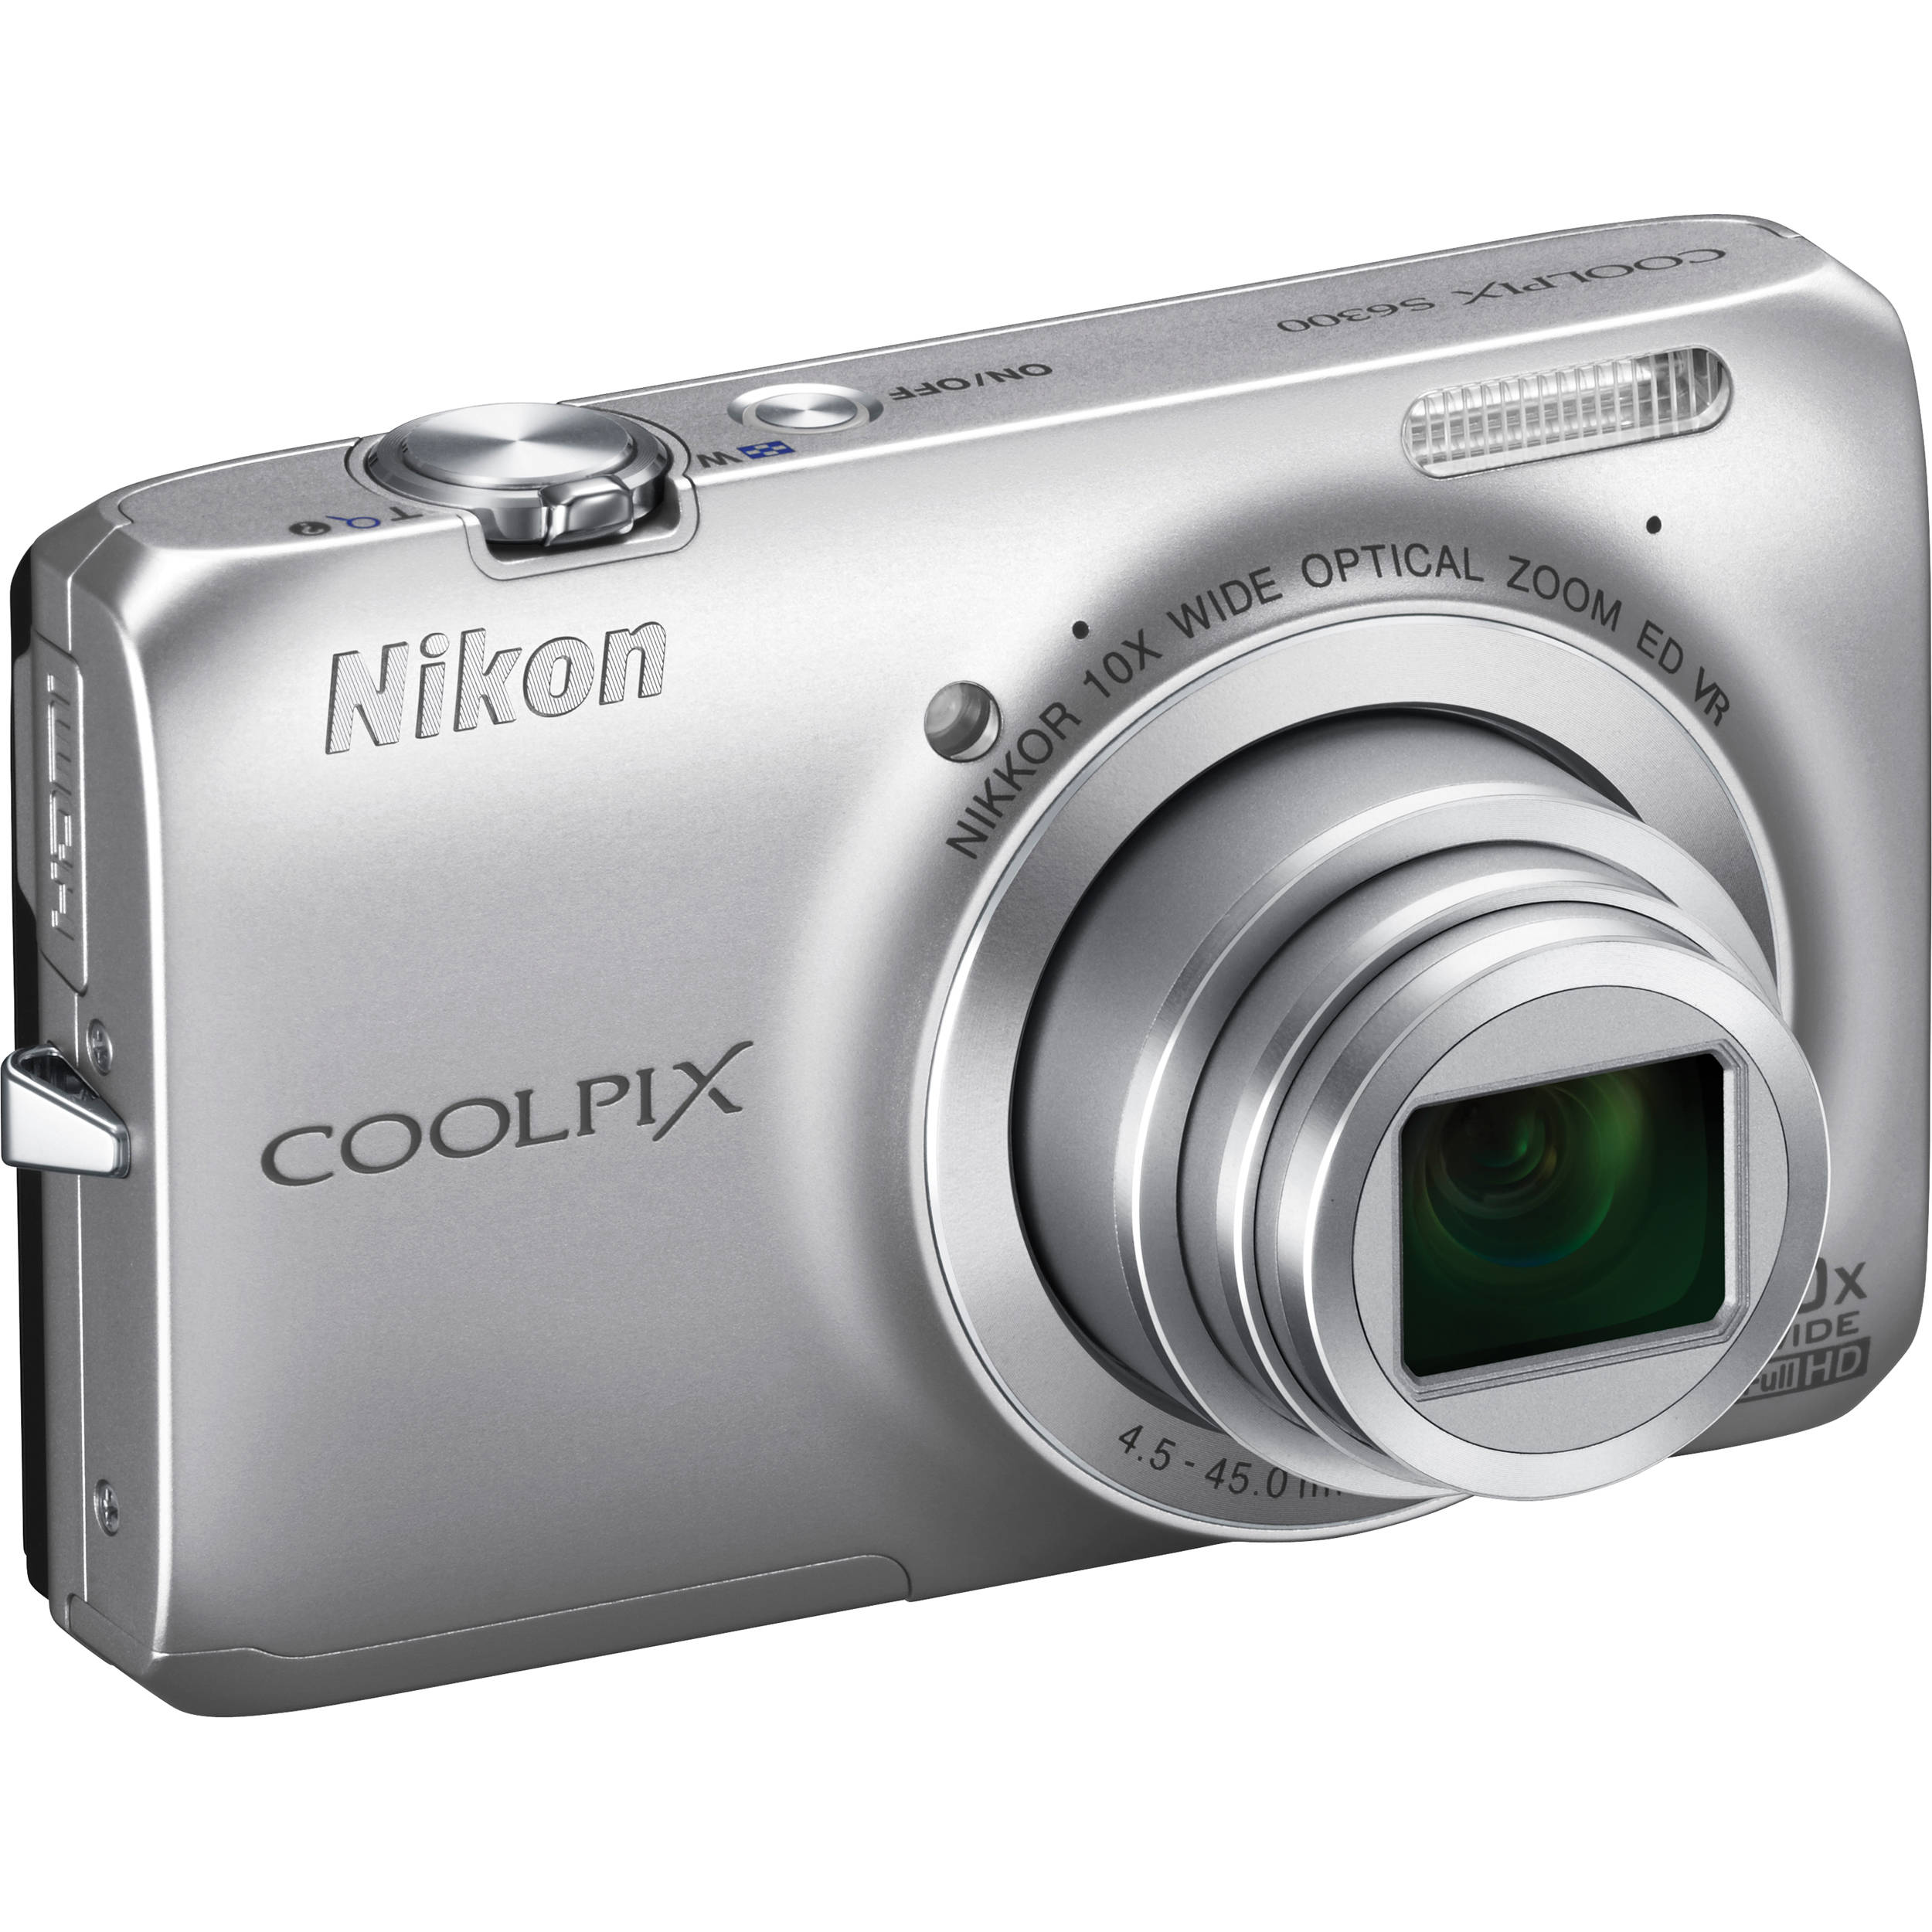 nikon coolpix s6300 digital camera silver 26300 b h photo rh bhphotovideo com Nikon Coolpix L20 Nikon Coolpix L20